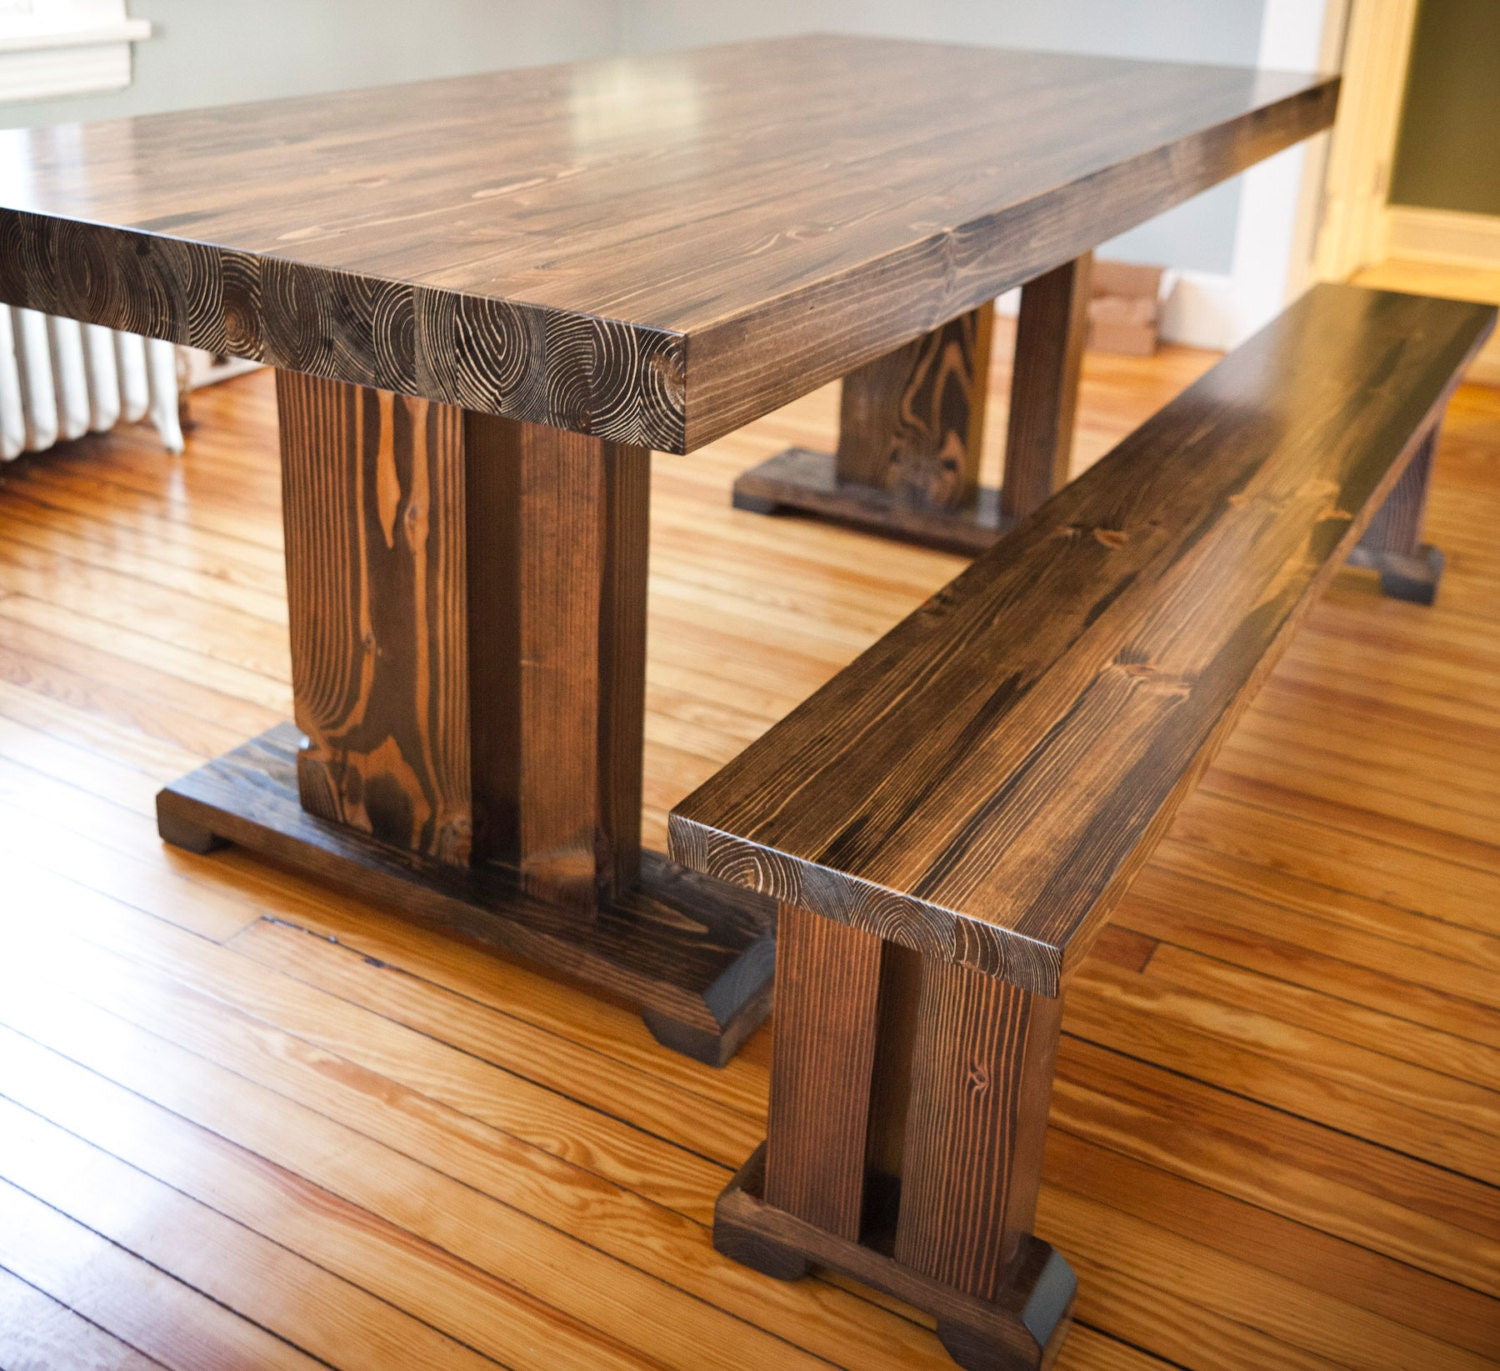 8ft Butcher Block Style Table Solid Wood Farmhouse By